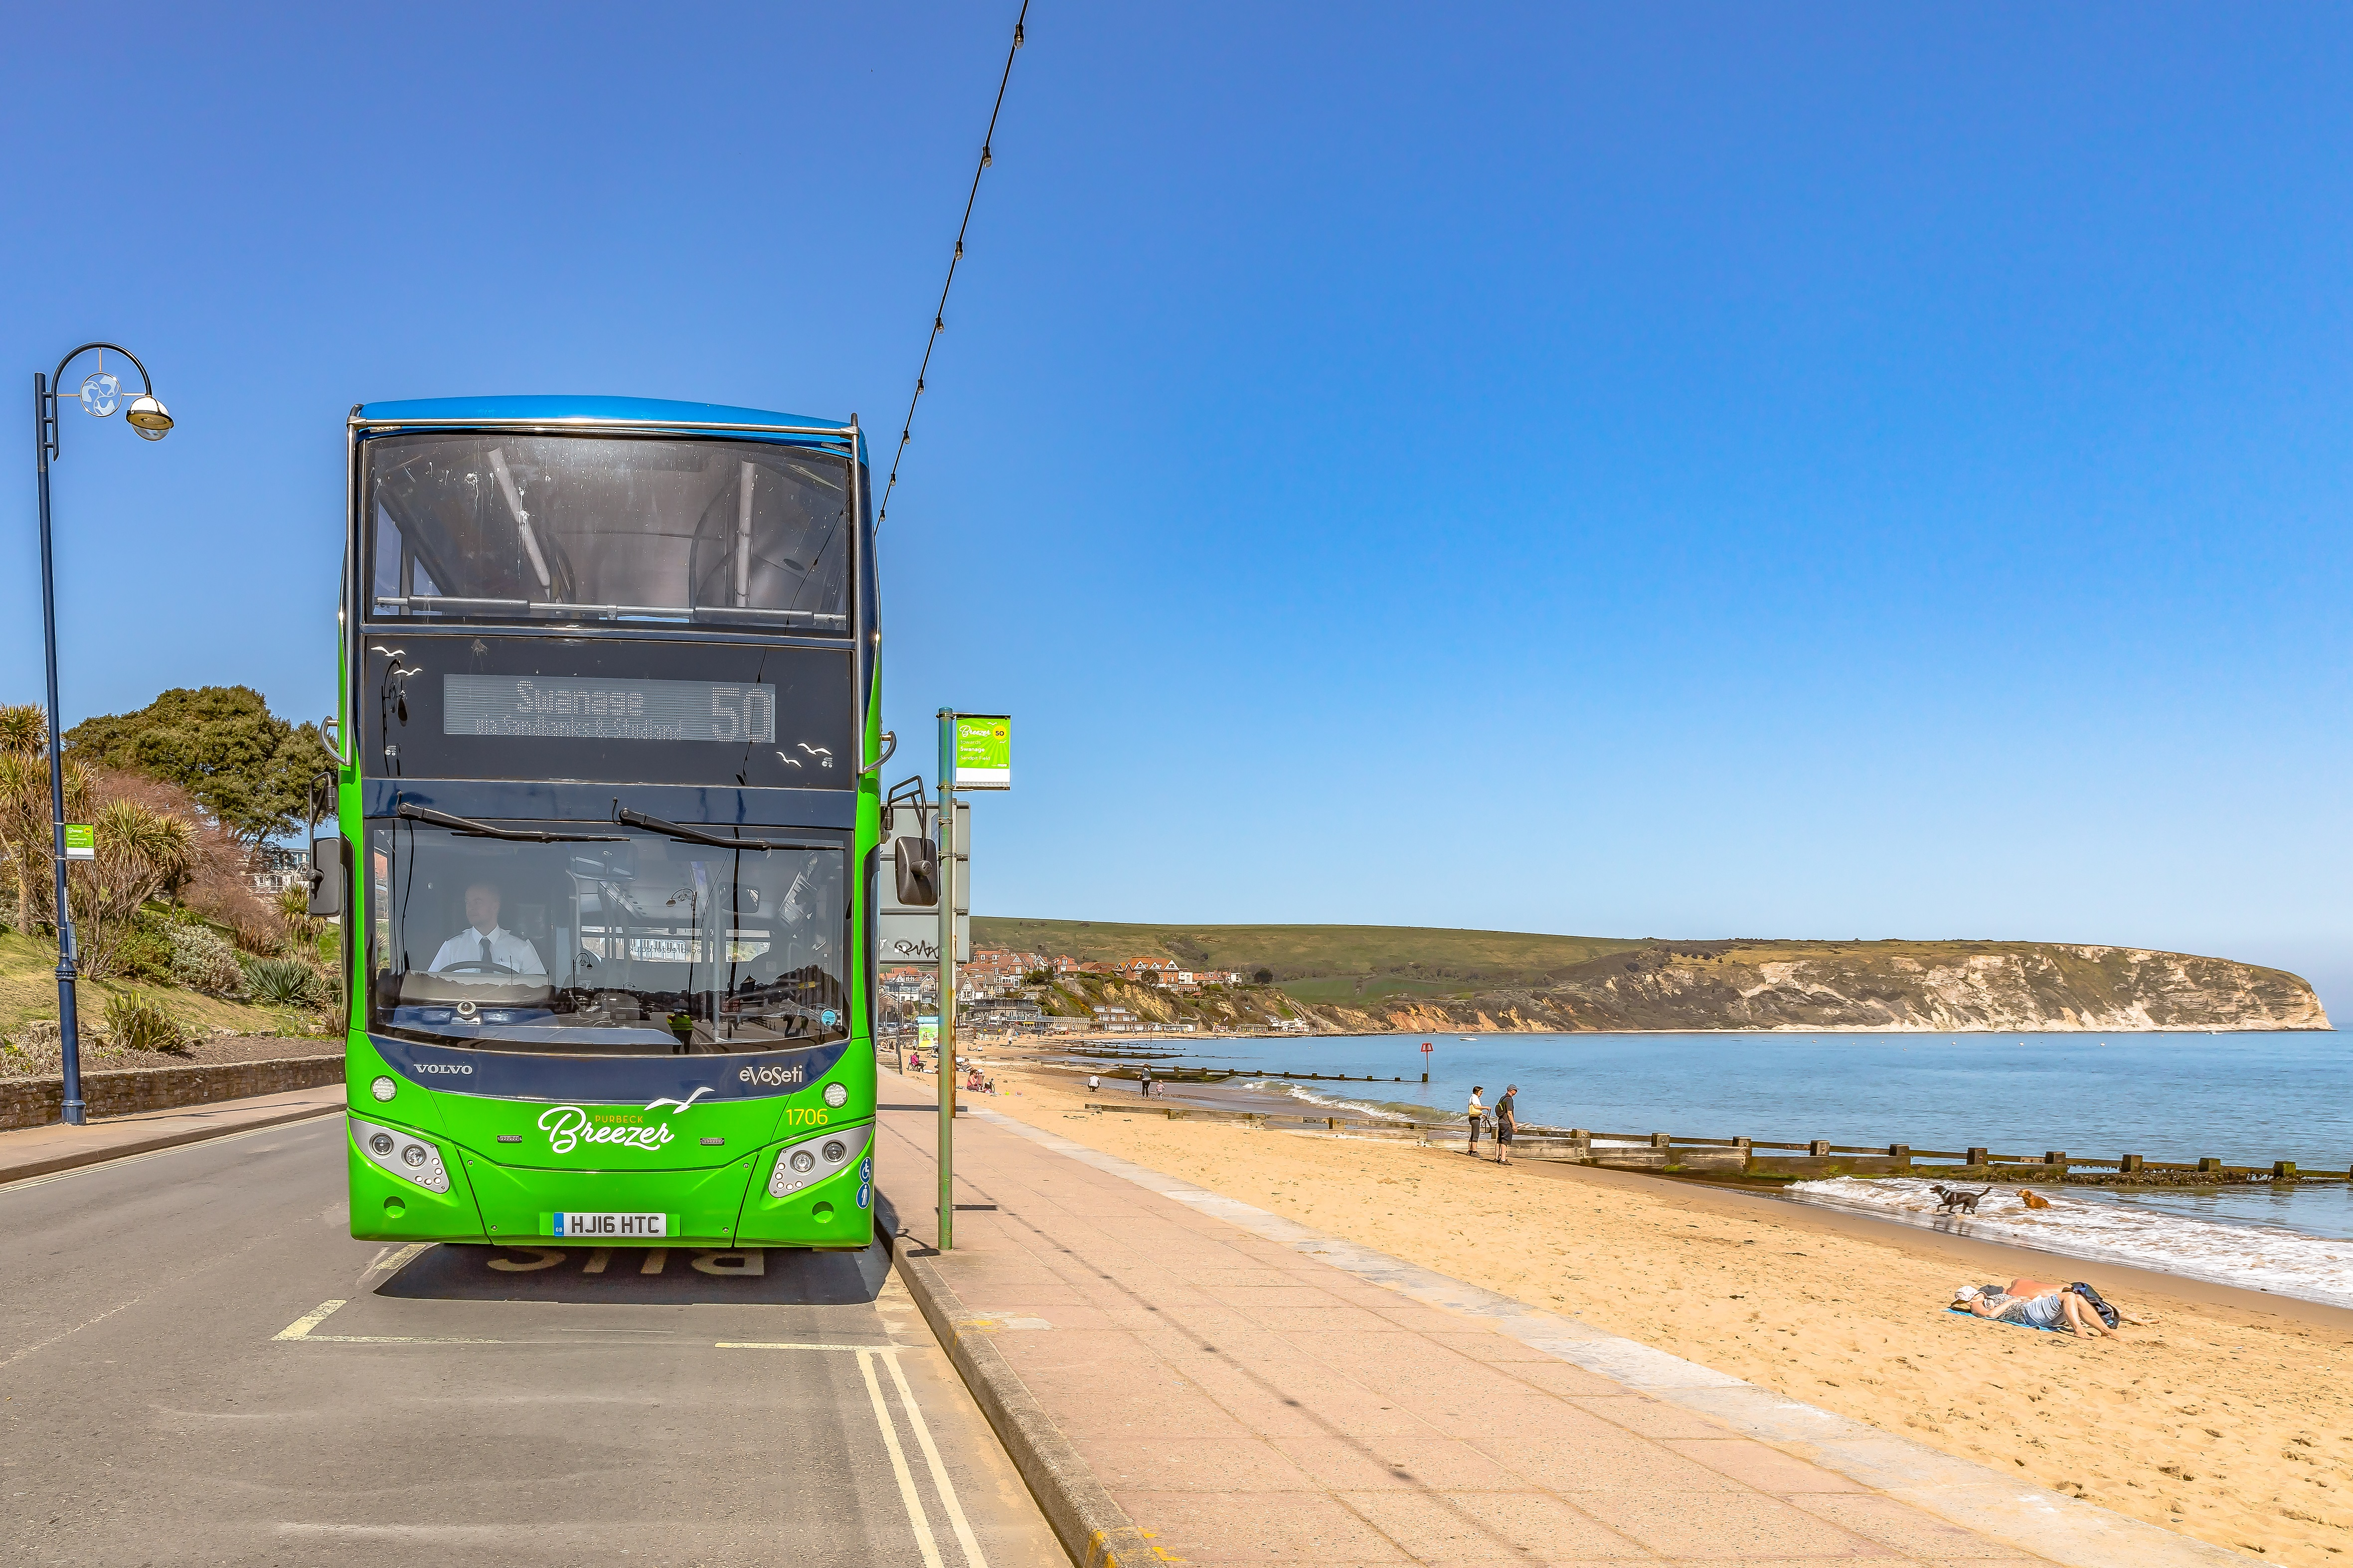 Photo of a Purbeck Breezer 50 service bus parked at Swanage